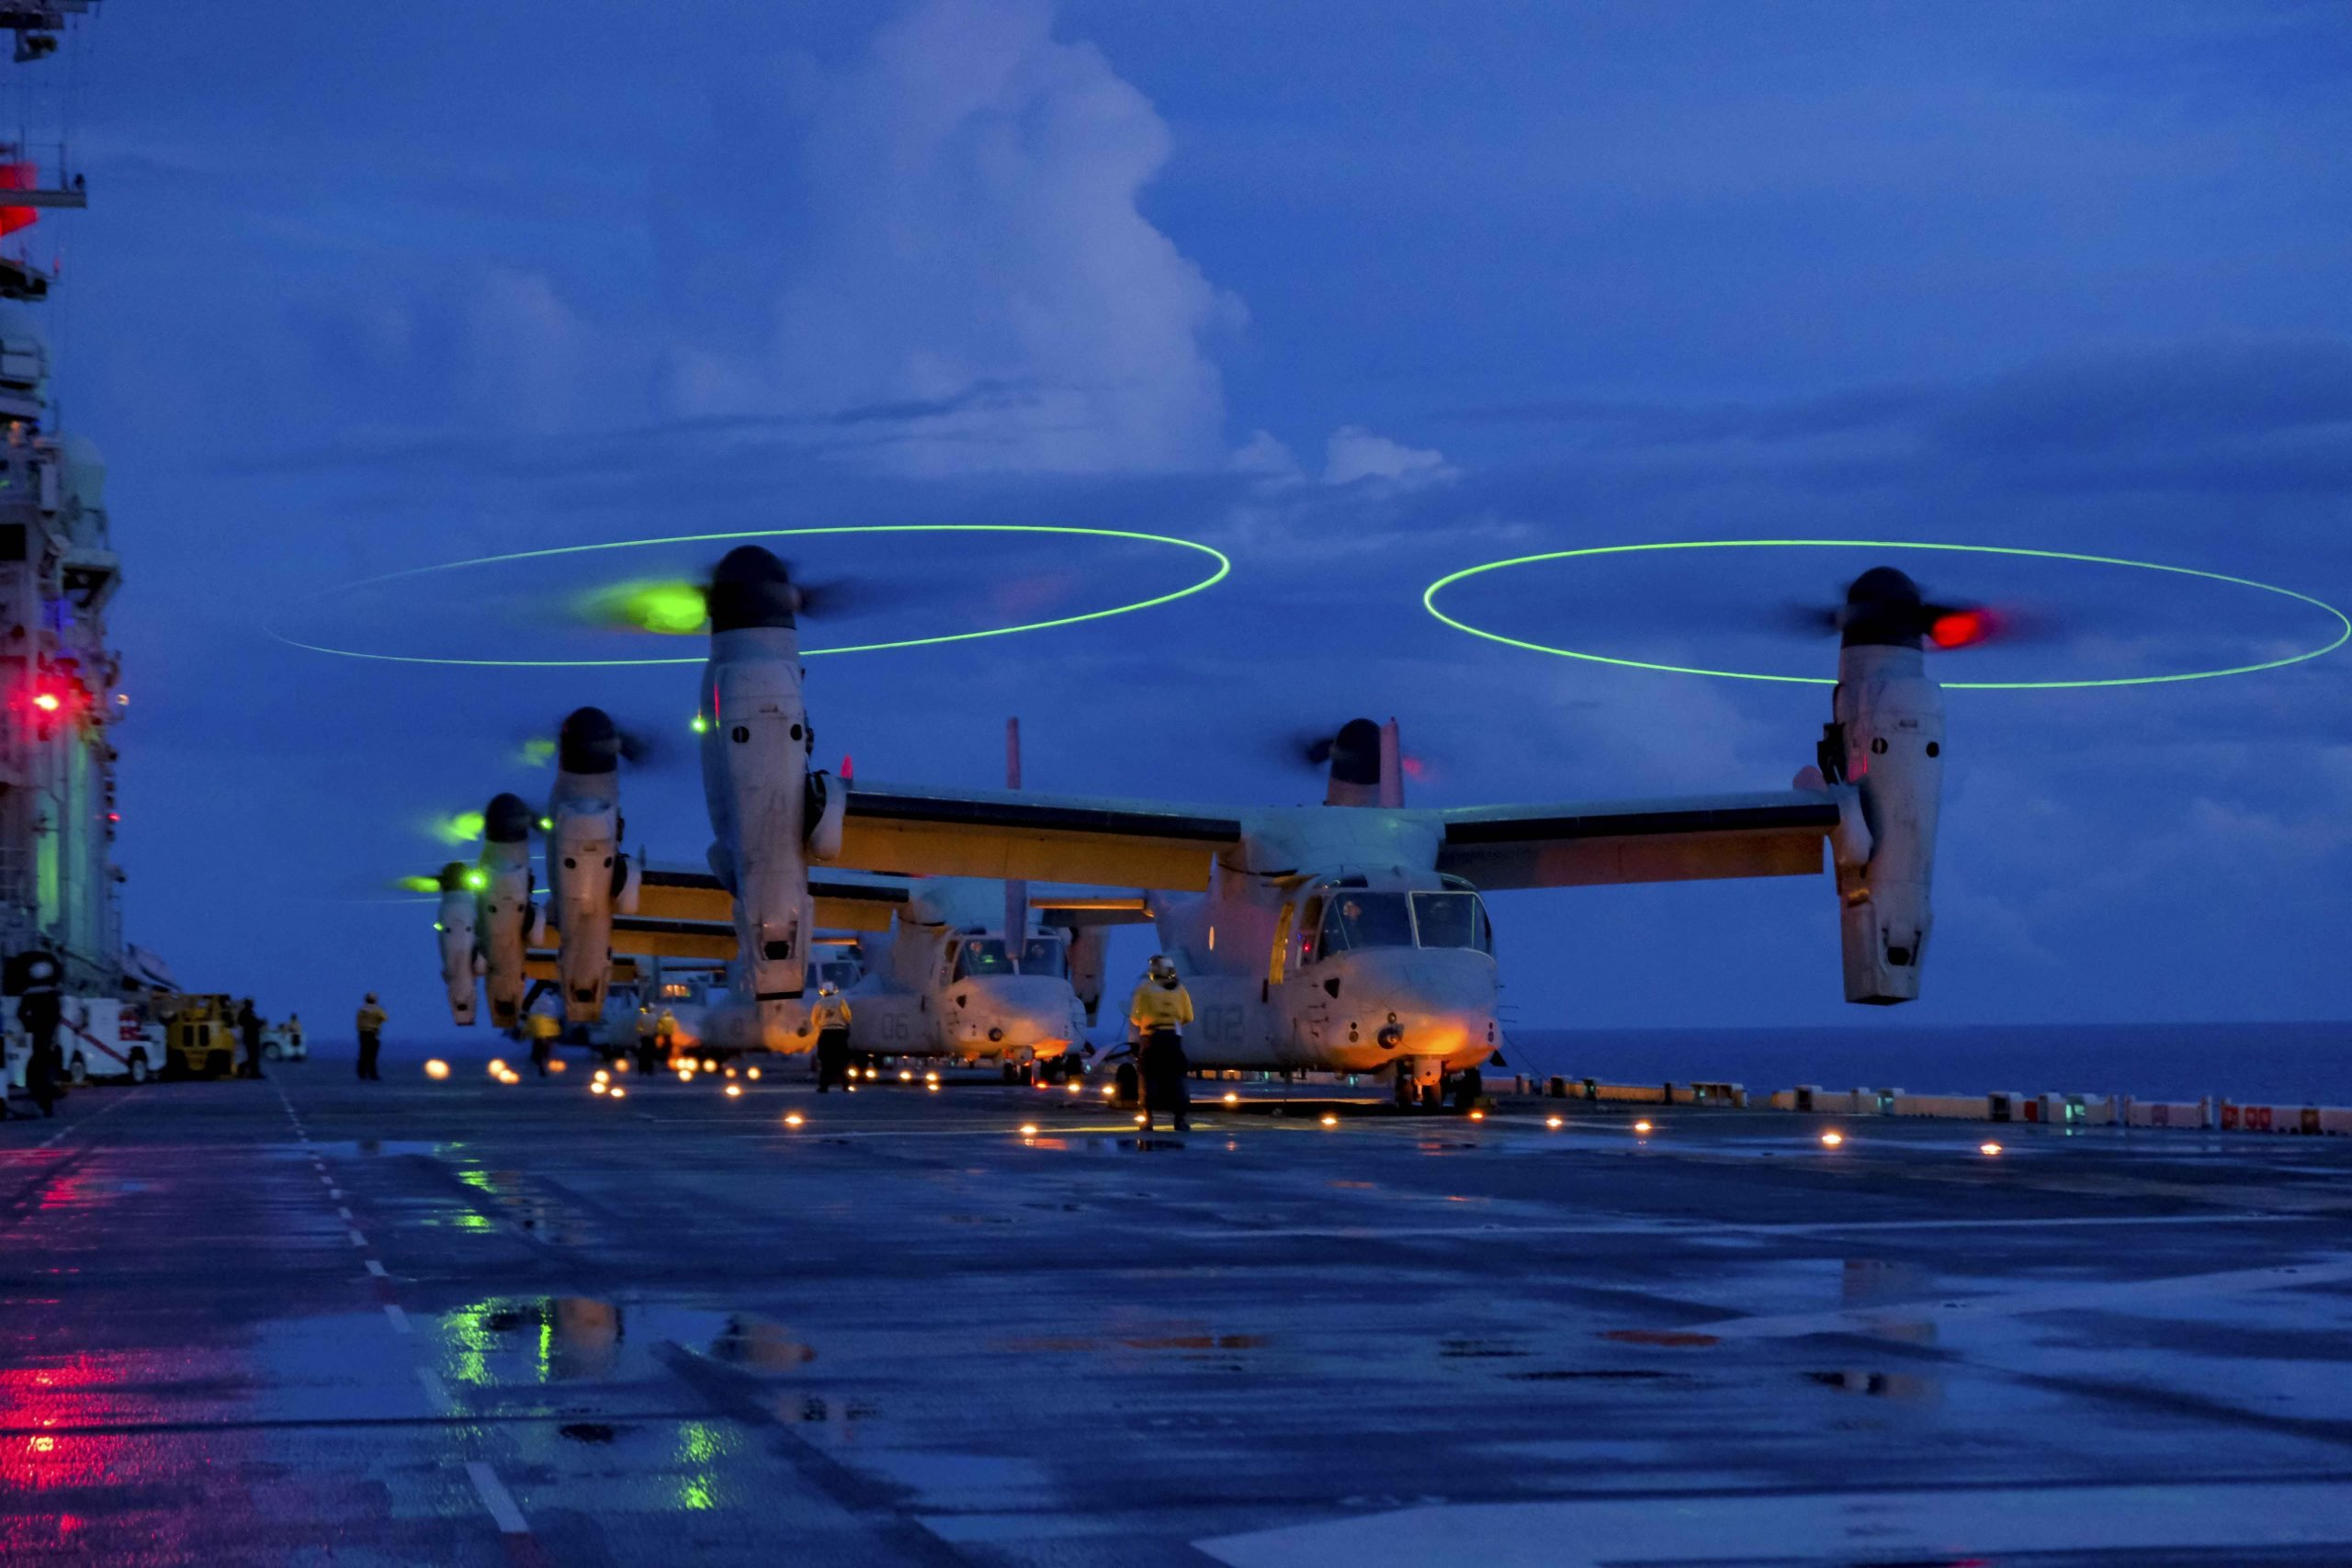 U.S. Marine Corps MV-22B's with Marine Medium Tiltrotor Squadron 265 (Reinforced), 31st Marine Expeditionary Unit (MEU), prepare for take-off aboard the amphibious assault ship USS America (LHA 6), in the Philippine Sea Aug. 17, 2021. The MV-22B provides combatant commanders with extended range and flexibility for a wide range of missions. The 31st MEU is operating aboard ships of America Expeditionary Strike Group in the 7th fleet area of operations to enhance interoperability with allies and partners and serve as a ready response force to defend peace and stability in the Indo-Pacific region. (U.S. Marine Corps photo by Staff Sgt. John Tetrault)